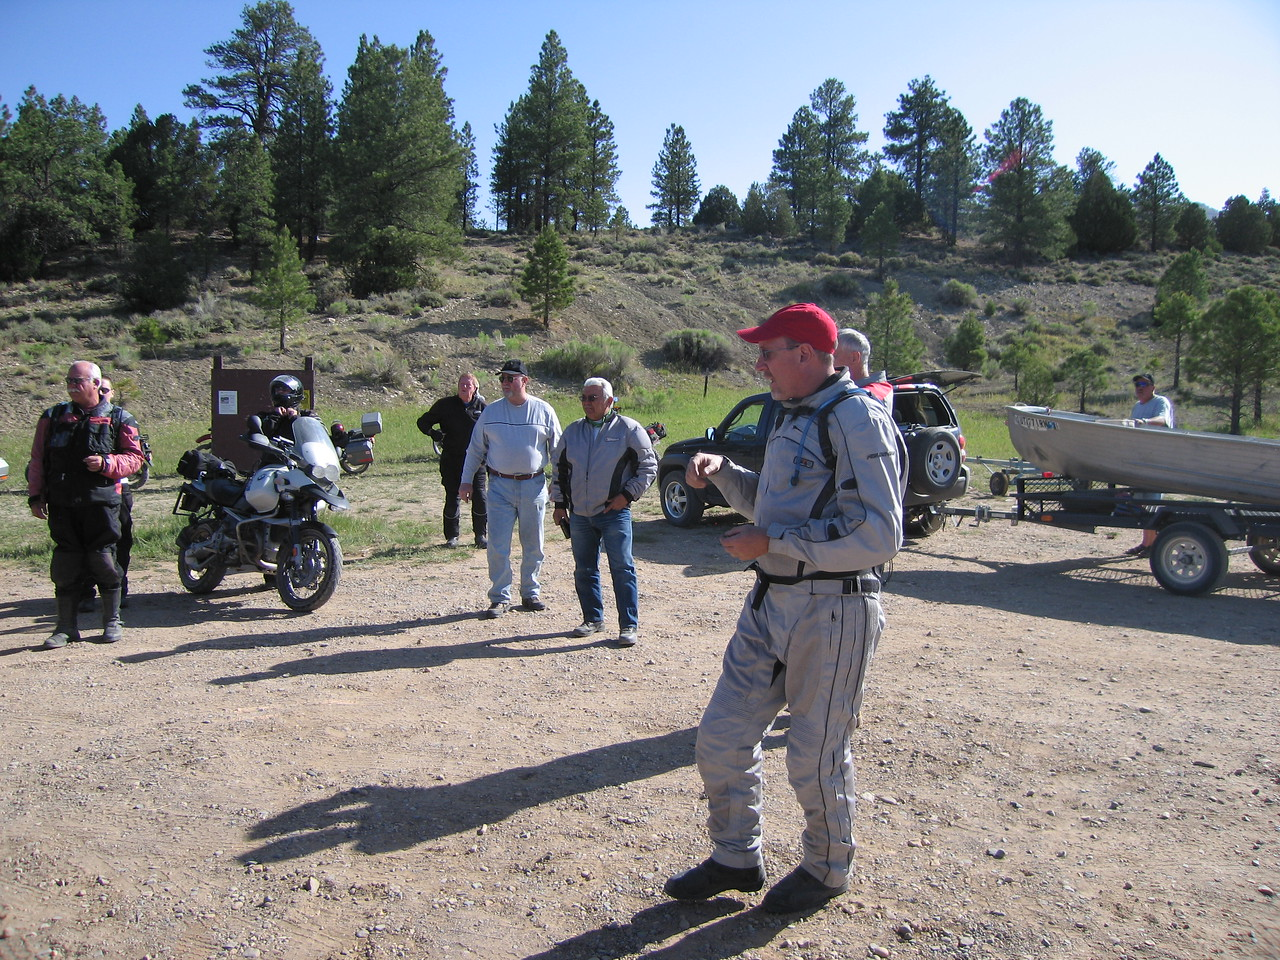 Ron gives us a break down of the ride at Pine Lake